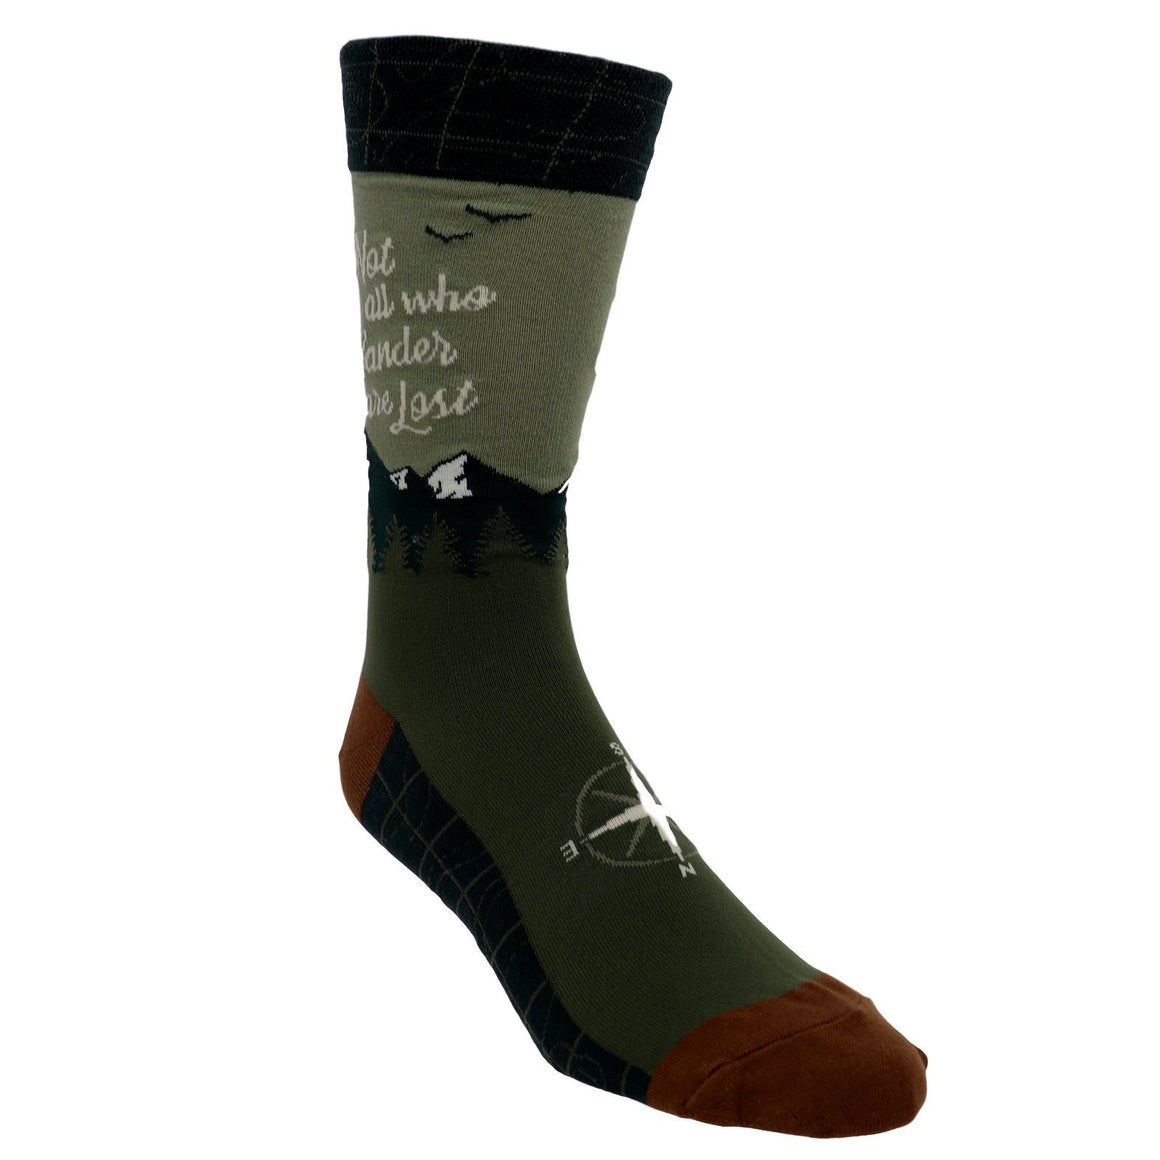 Not All Who Wander Are Lost Men's Socks by Foot Traffic - The Sock Spot